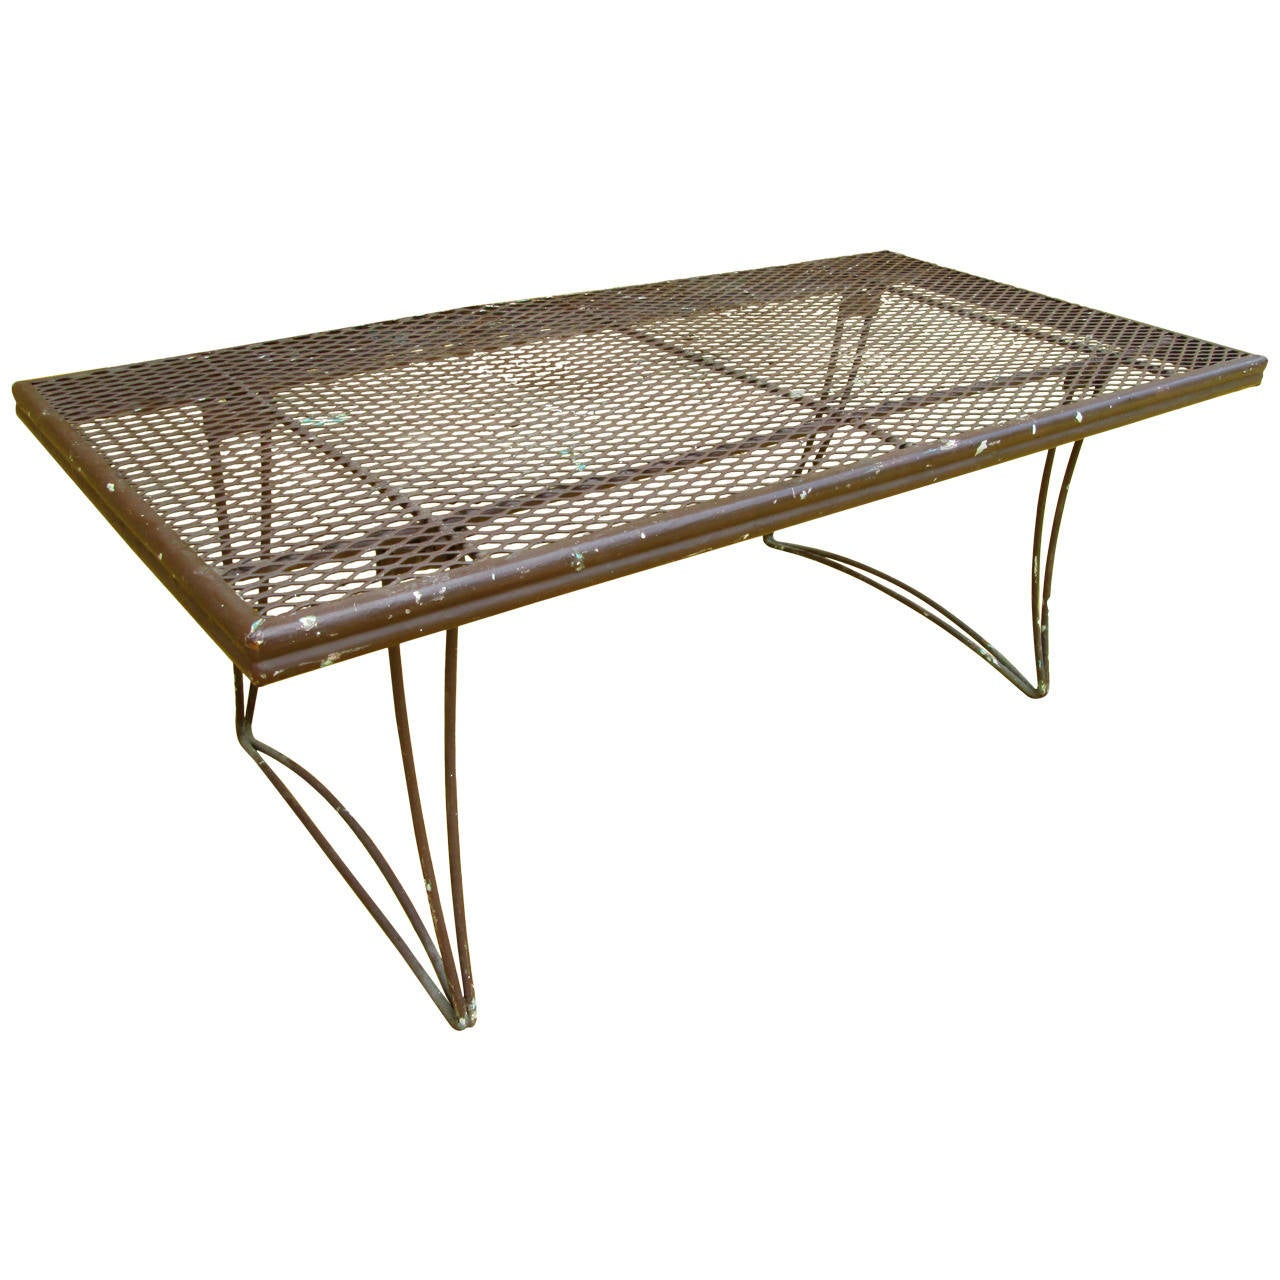 Inspiring Metal Patio Coffee Table Patio Design 384